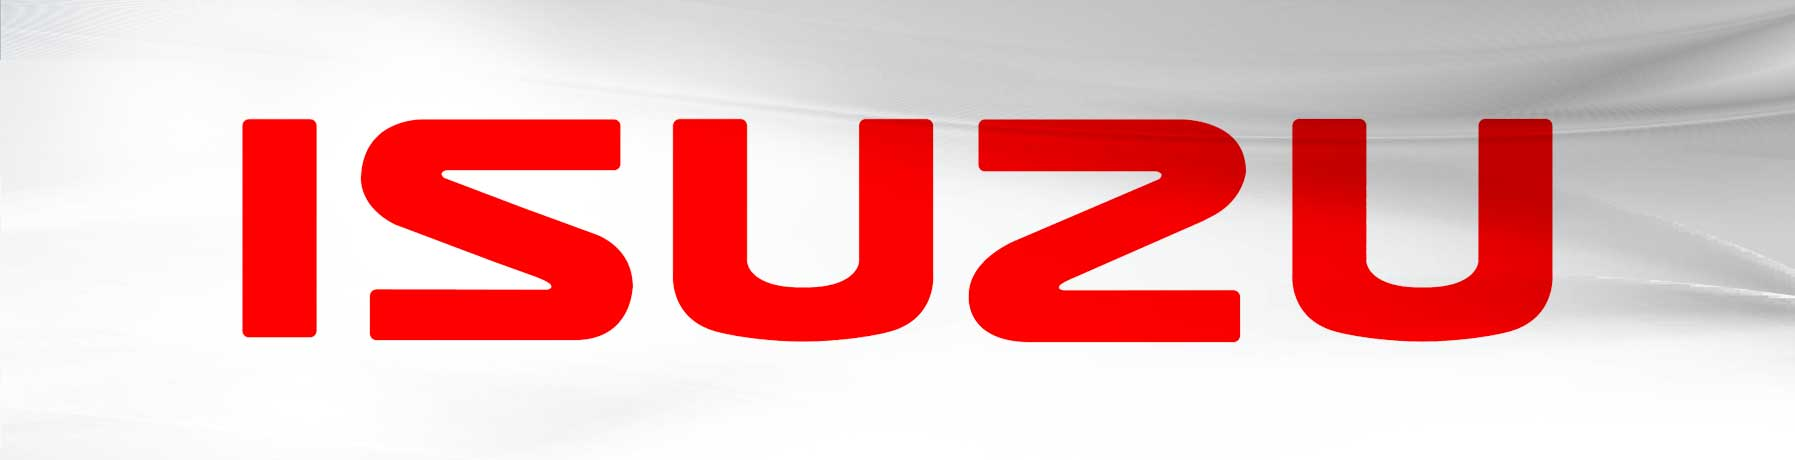 We service Isuzu vehicles